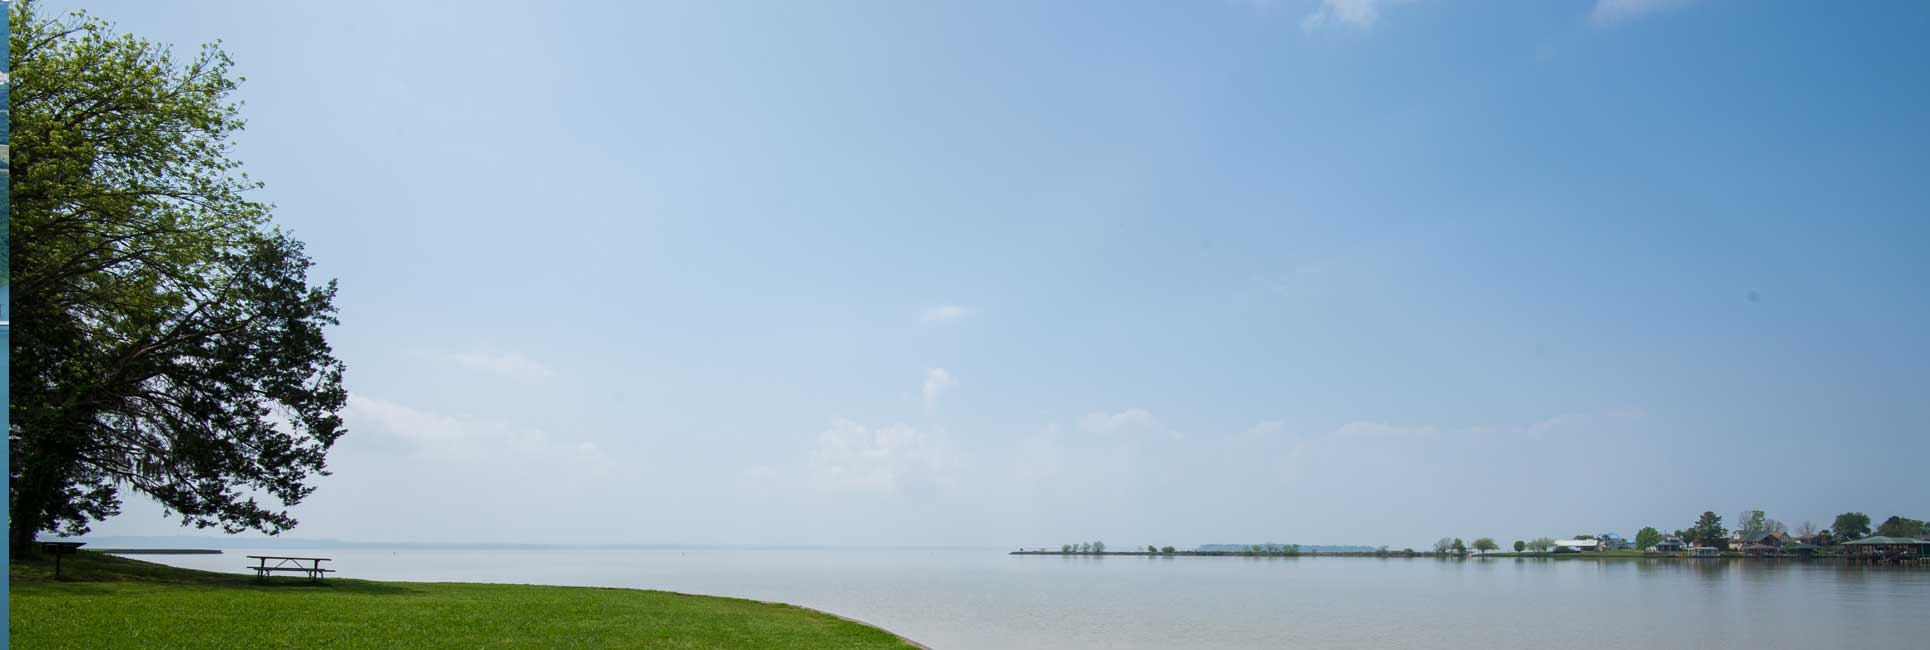 Overlooking Lake Livingston from a park on a summer day